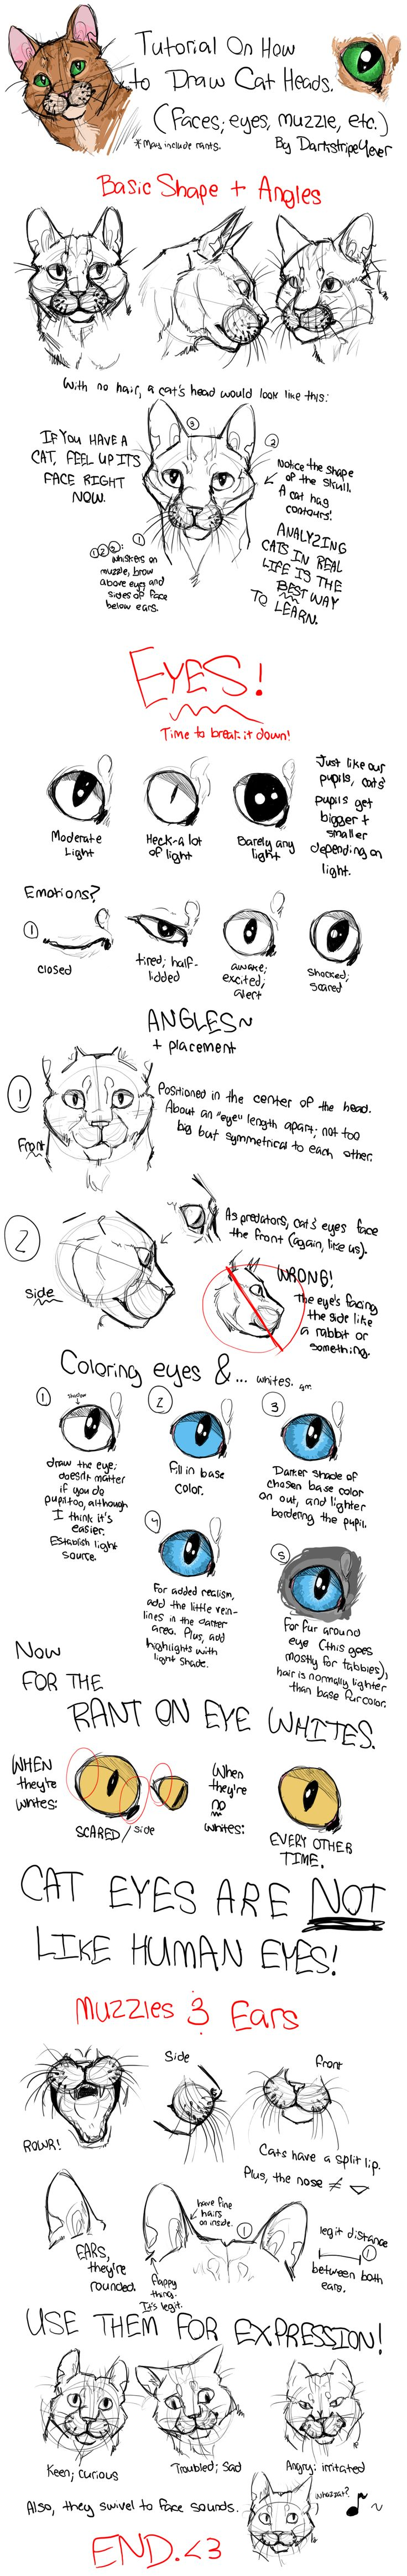 How to Draw Cat Heads ★ || CHARACTER DESIGN REFERENCES (www.facebook.com/CharacterDesignReferences & pinterest.com/characterdesigh) • Love Character Design? Join the Character Design Challenge (link→ www.facebook.com/groups/CharacterDesignChallenge) Share your unique vision of a theme every month, promote your art and make new friends in a community of over 25.000 artists! || ★